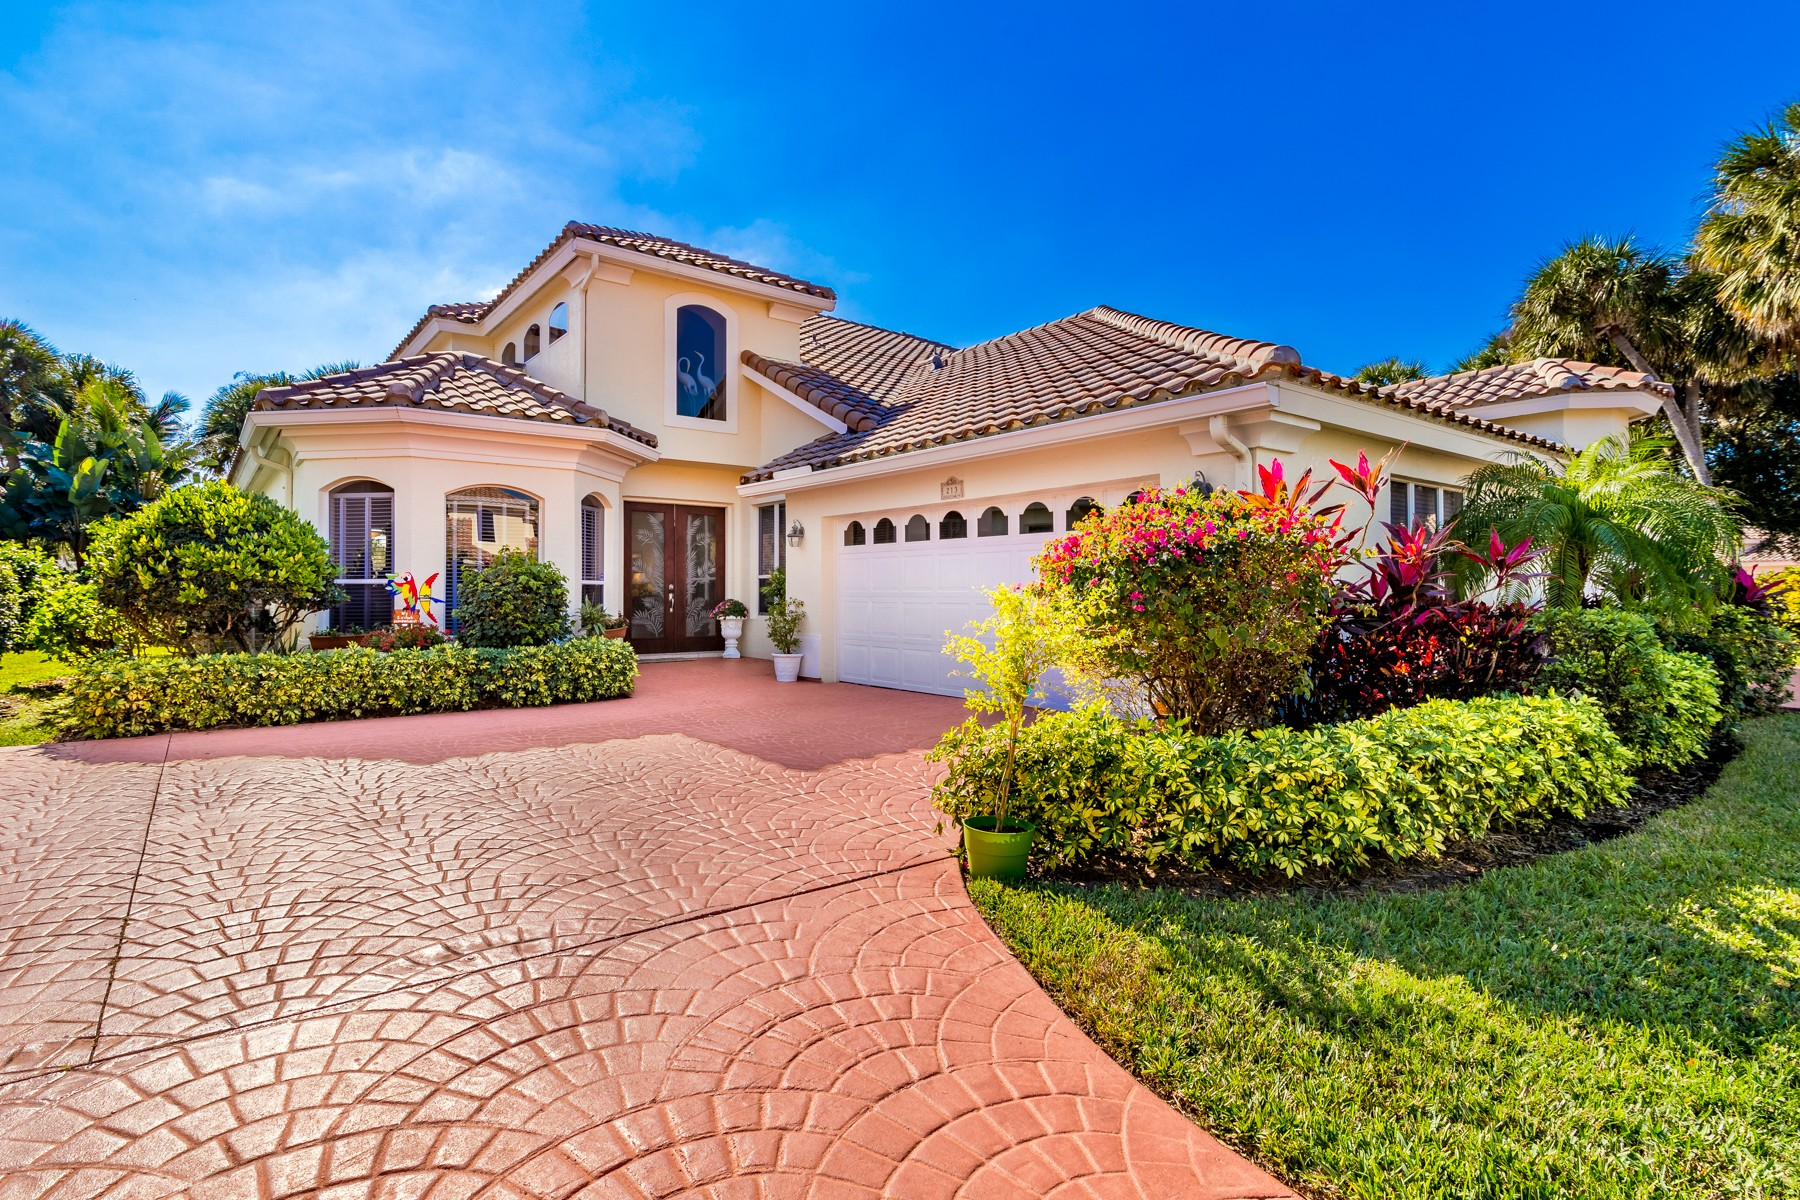 Bright & open villa in desirable Osprey Villas of Aquarina. 213 Osprey Villas Court Melbourne Beach, Florida 32951 Hoa Kỳ